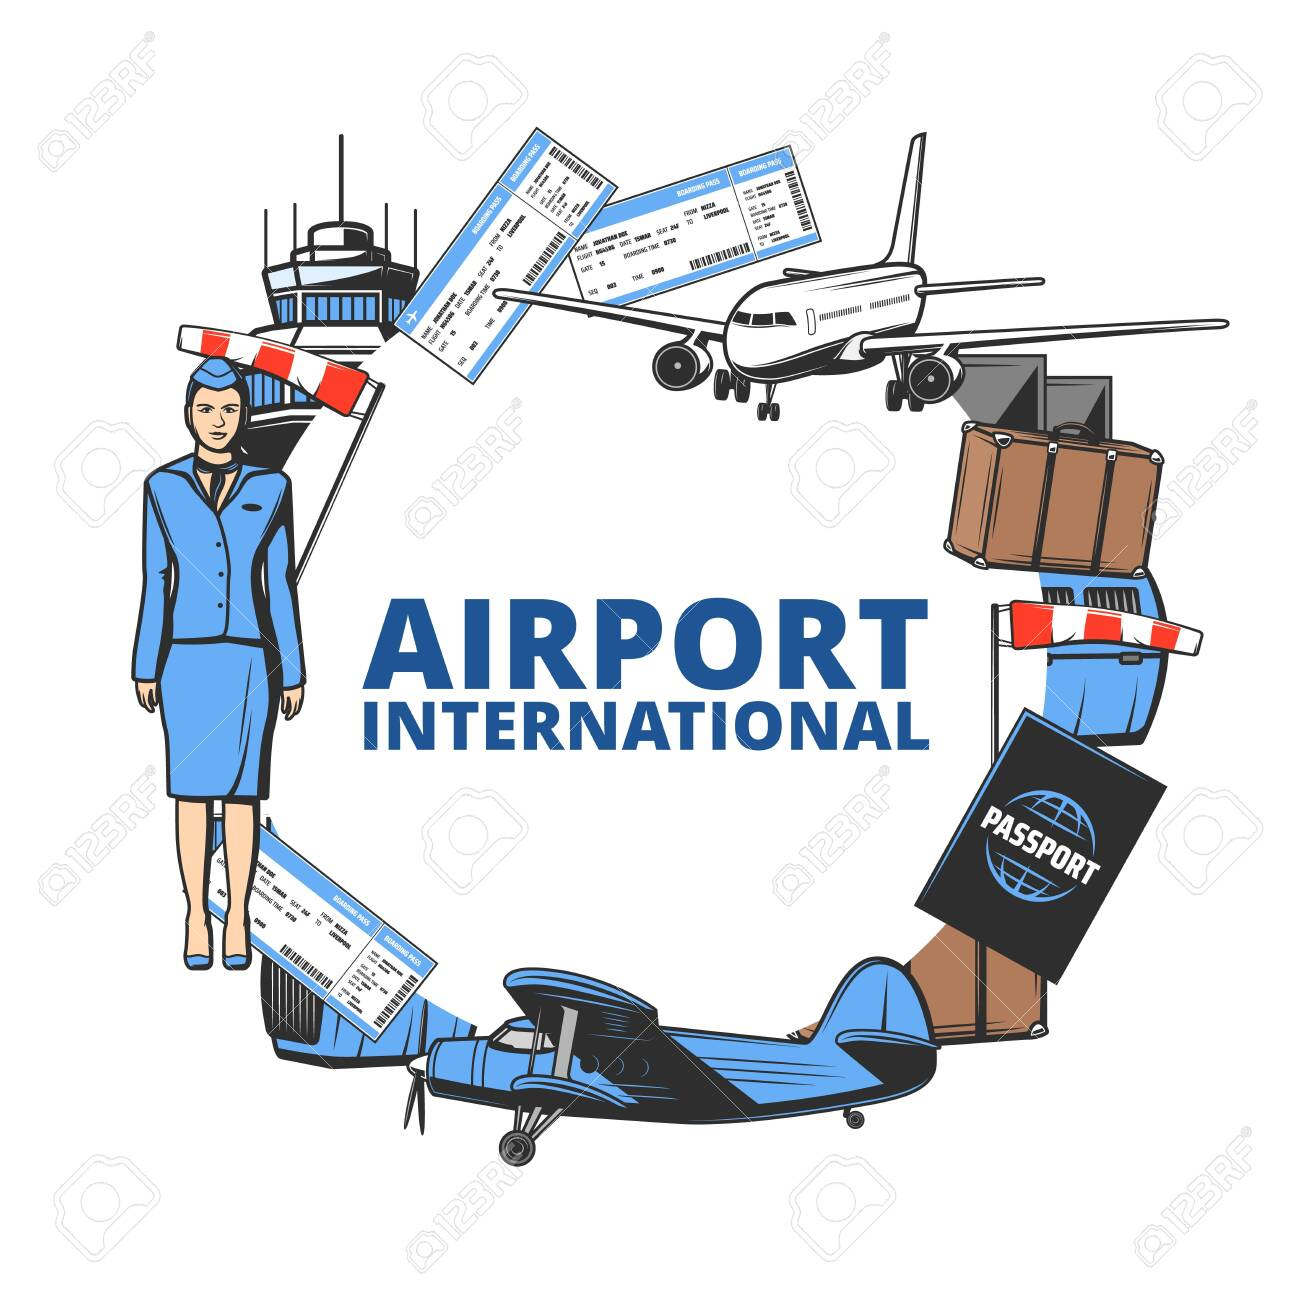 Airport And Air Travel Vector Icon With Plane Passport And Tower Royalty Free Cliparts Vectors And Stock Illustration Image 151600665